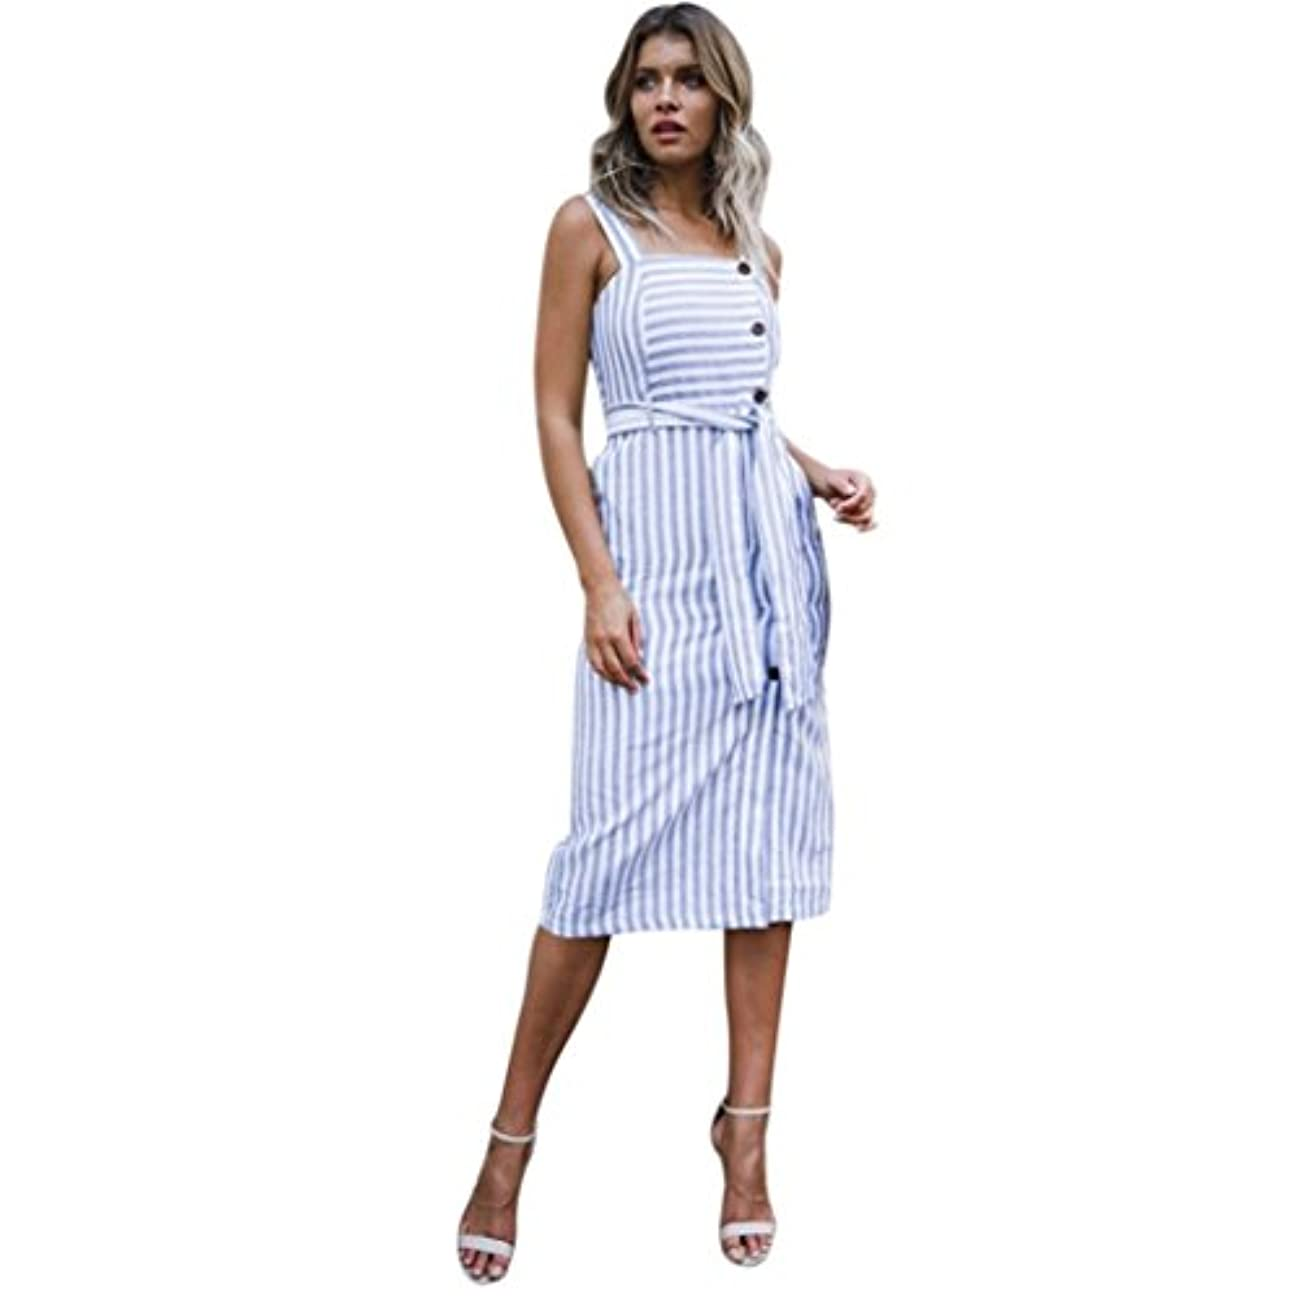 交響曲落胆させるペルーSakuraBest Womens Summer Striped Button Down Dress,Shoulder Strap Knee-Length Dress for Girls (M)